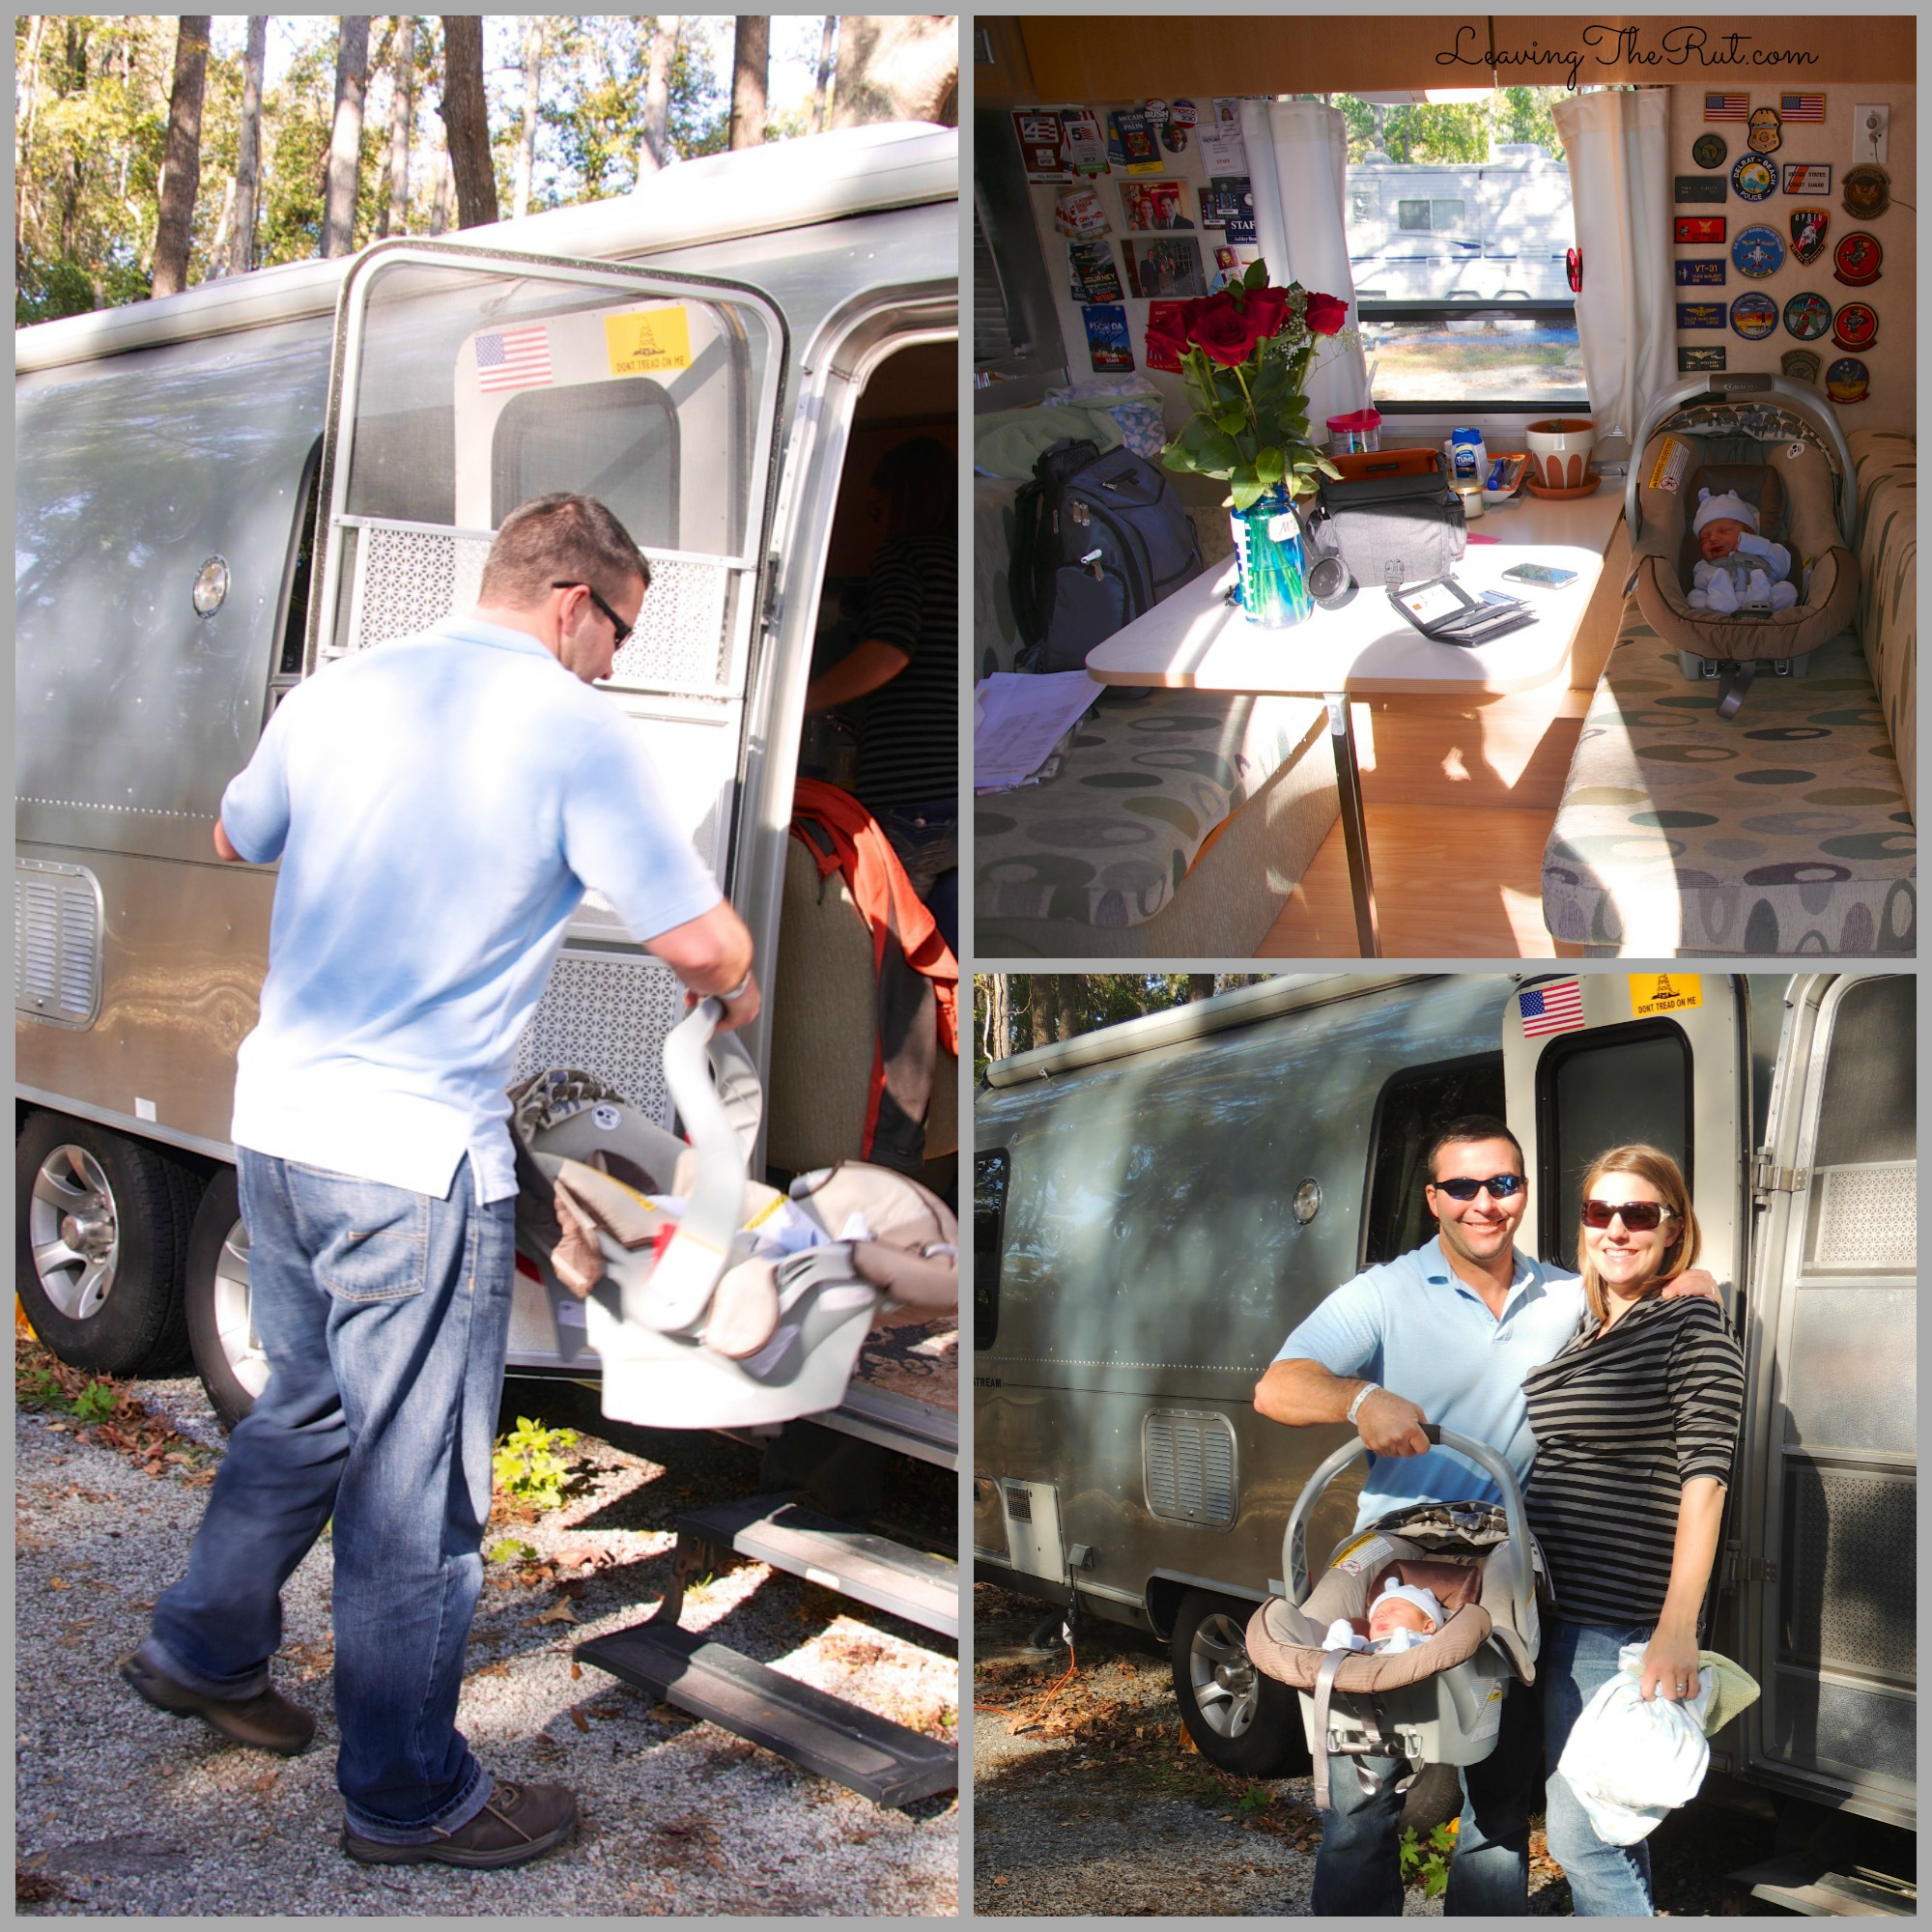 His First Home was an Airstream coming home